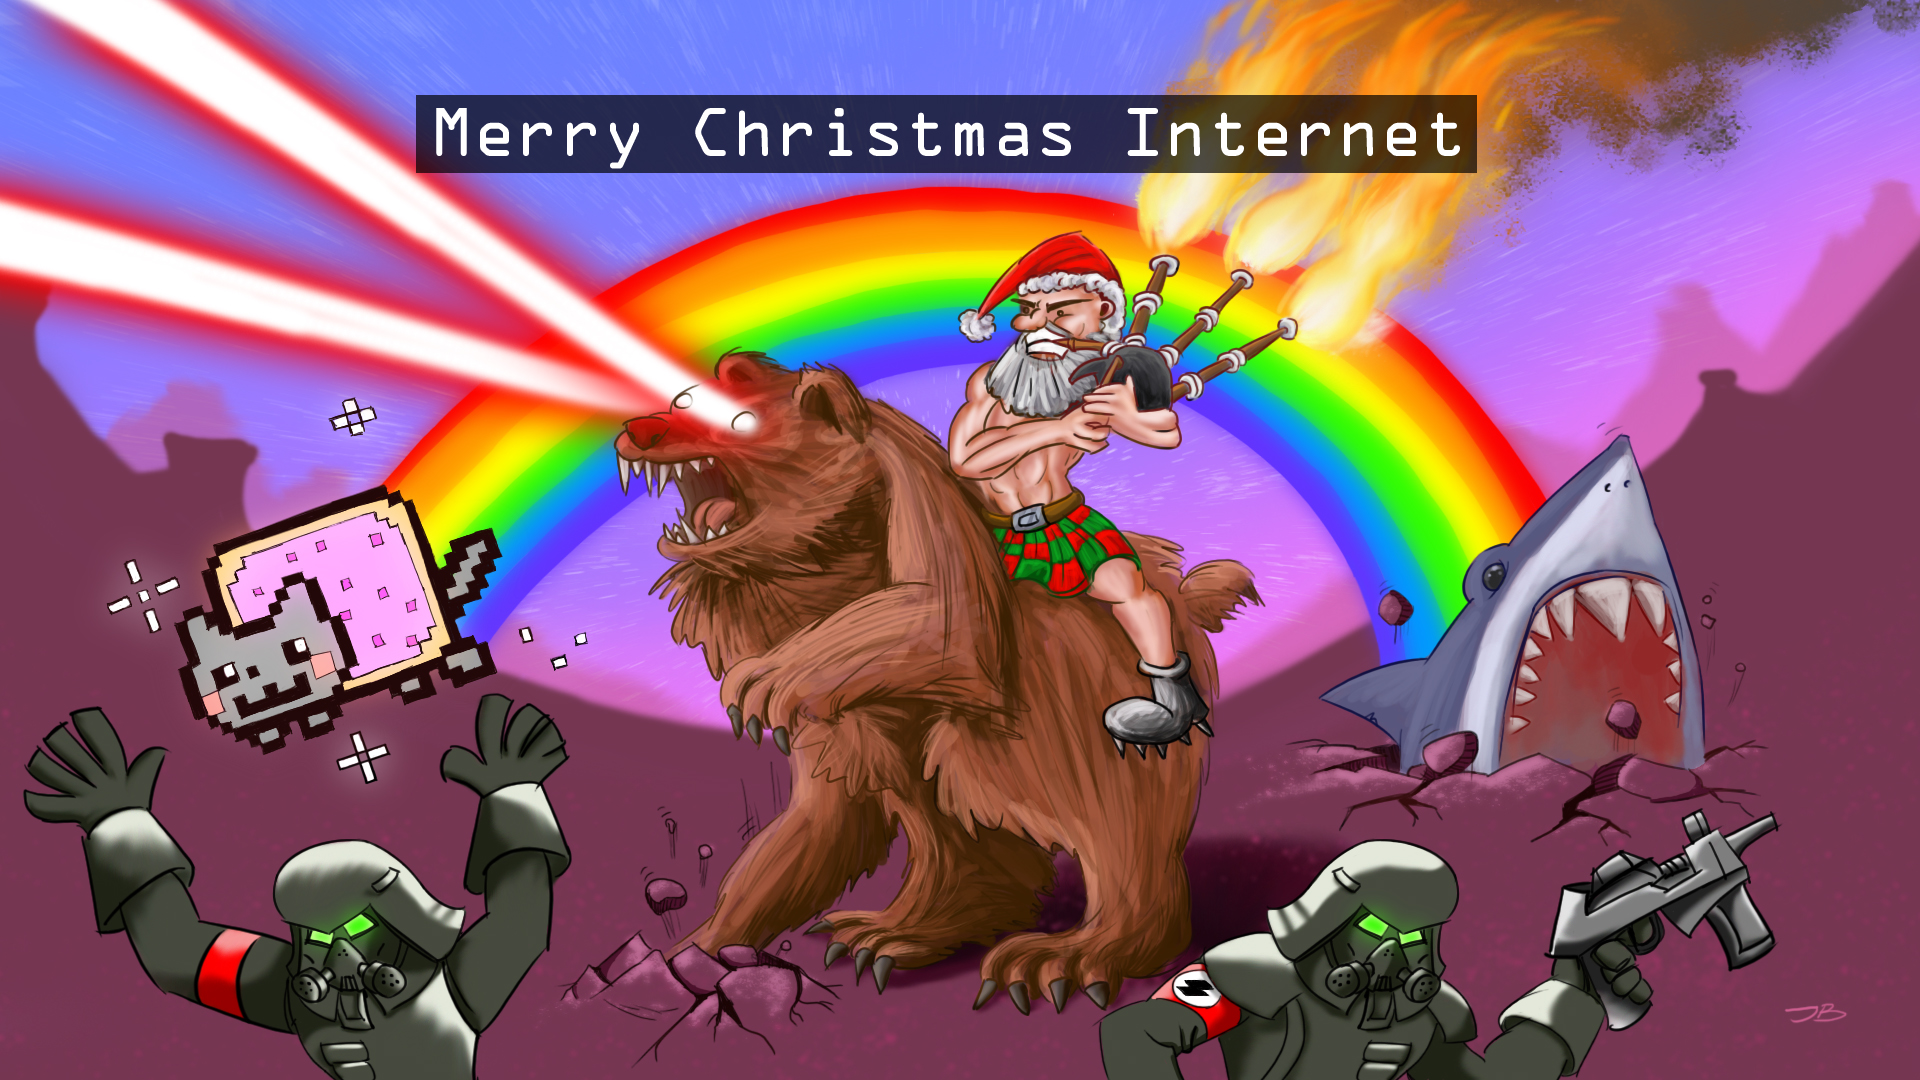 Merry Christmas Internet